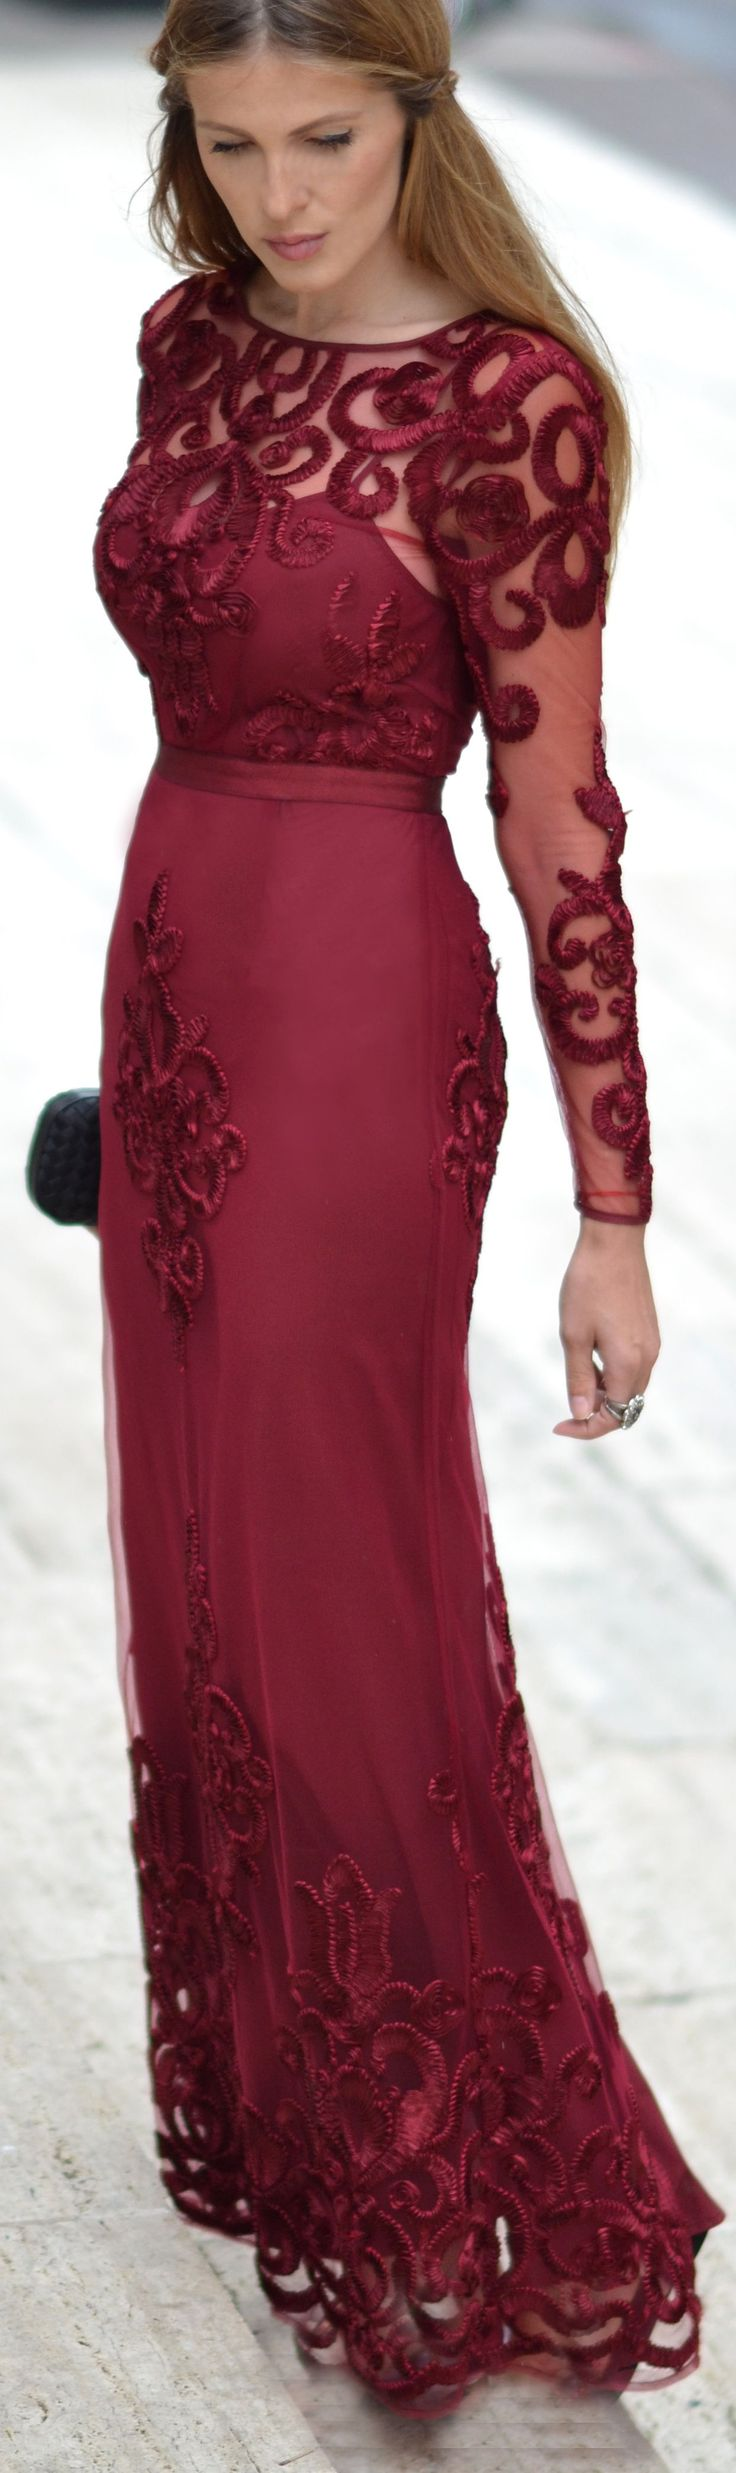 The Secret Stop Red Wine Embroidered Gown